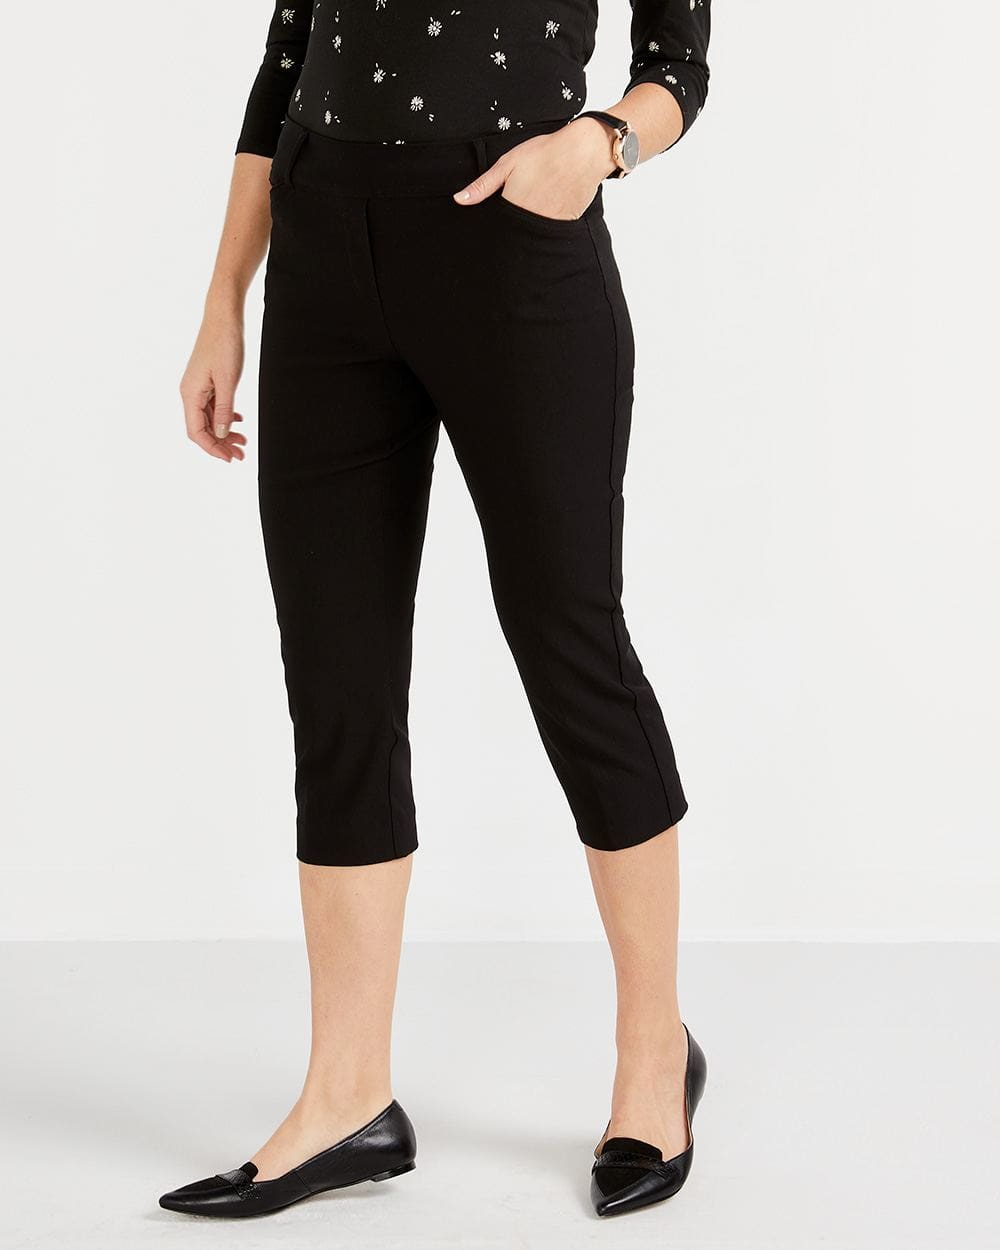 The Iconic Solid Capris